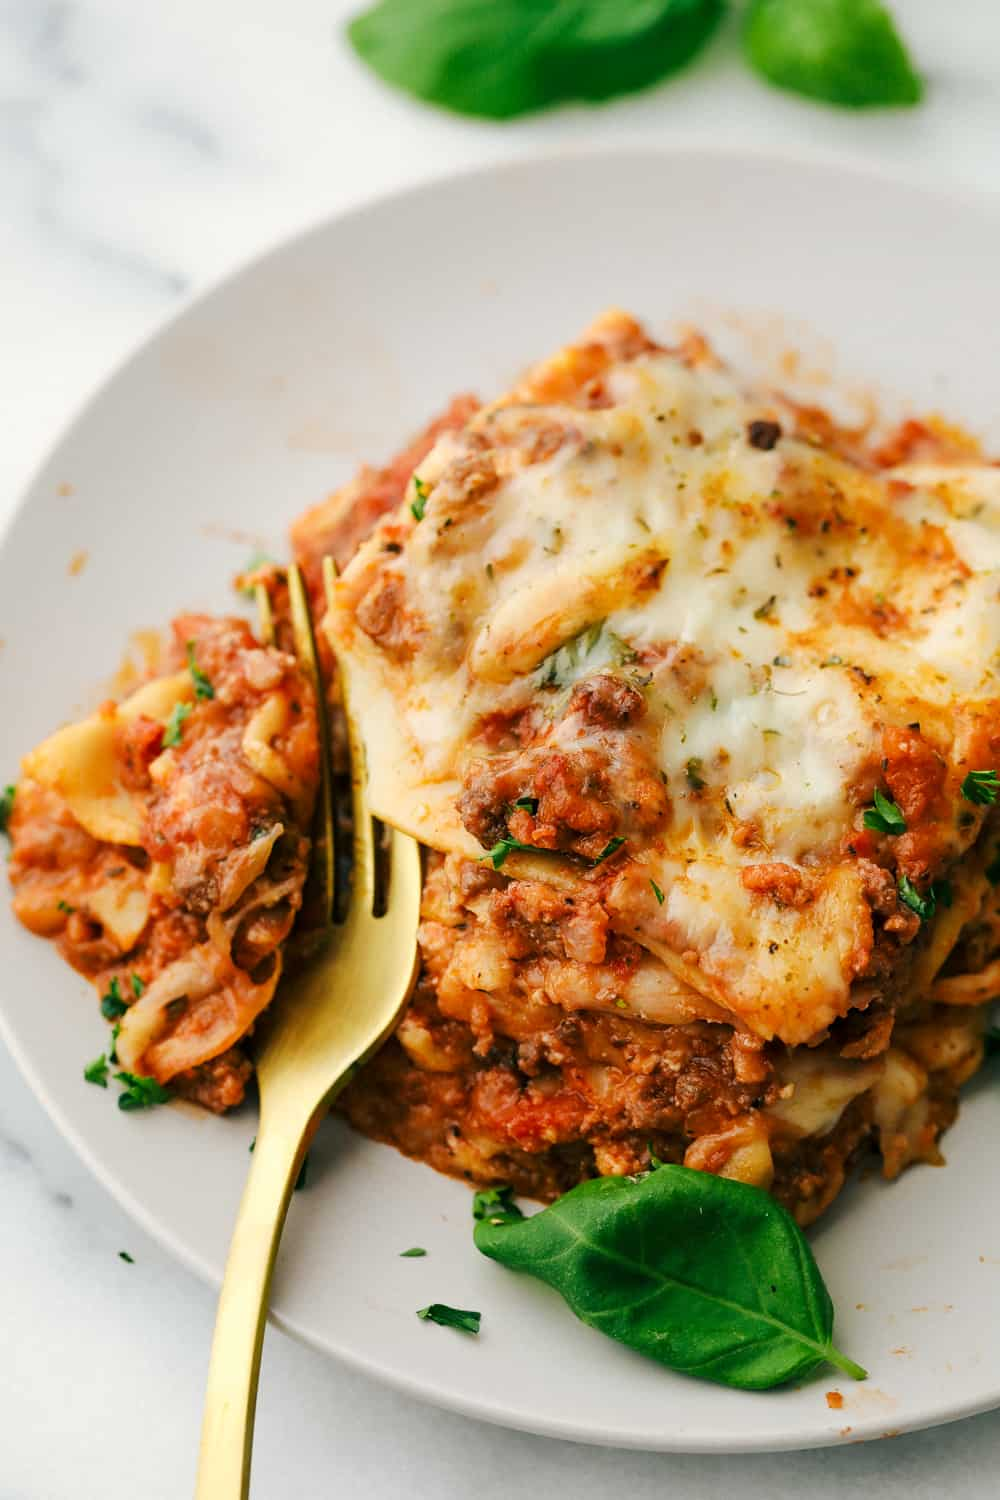 The Best Classic Lasagna Ever Has Layers Of Sauteed Ground Beef And Italian Sausage That Are Cooked Together Best Lasagna Recipe Classic Lasagna Lasagna Recipe